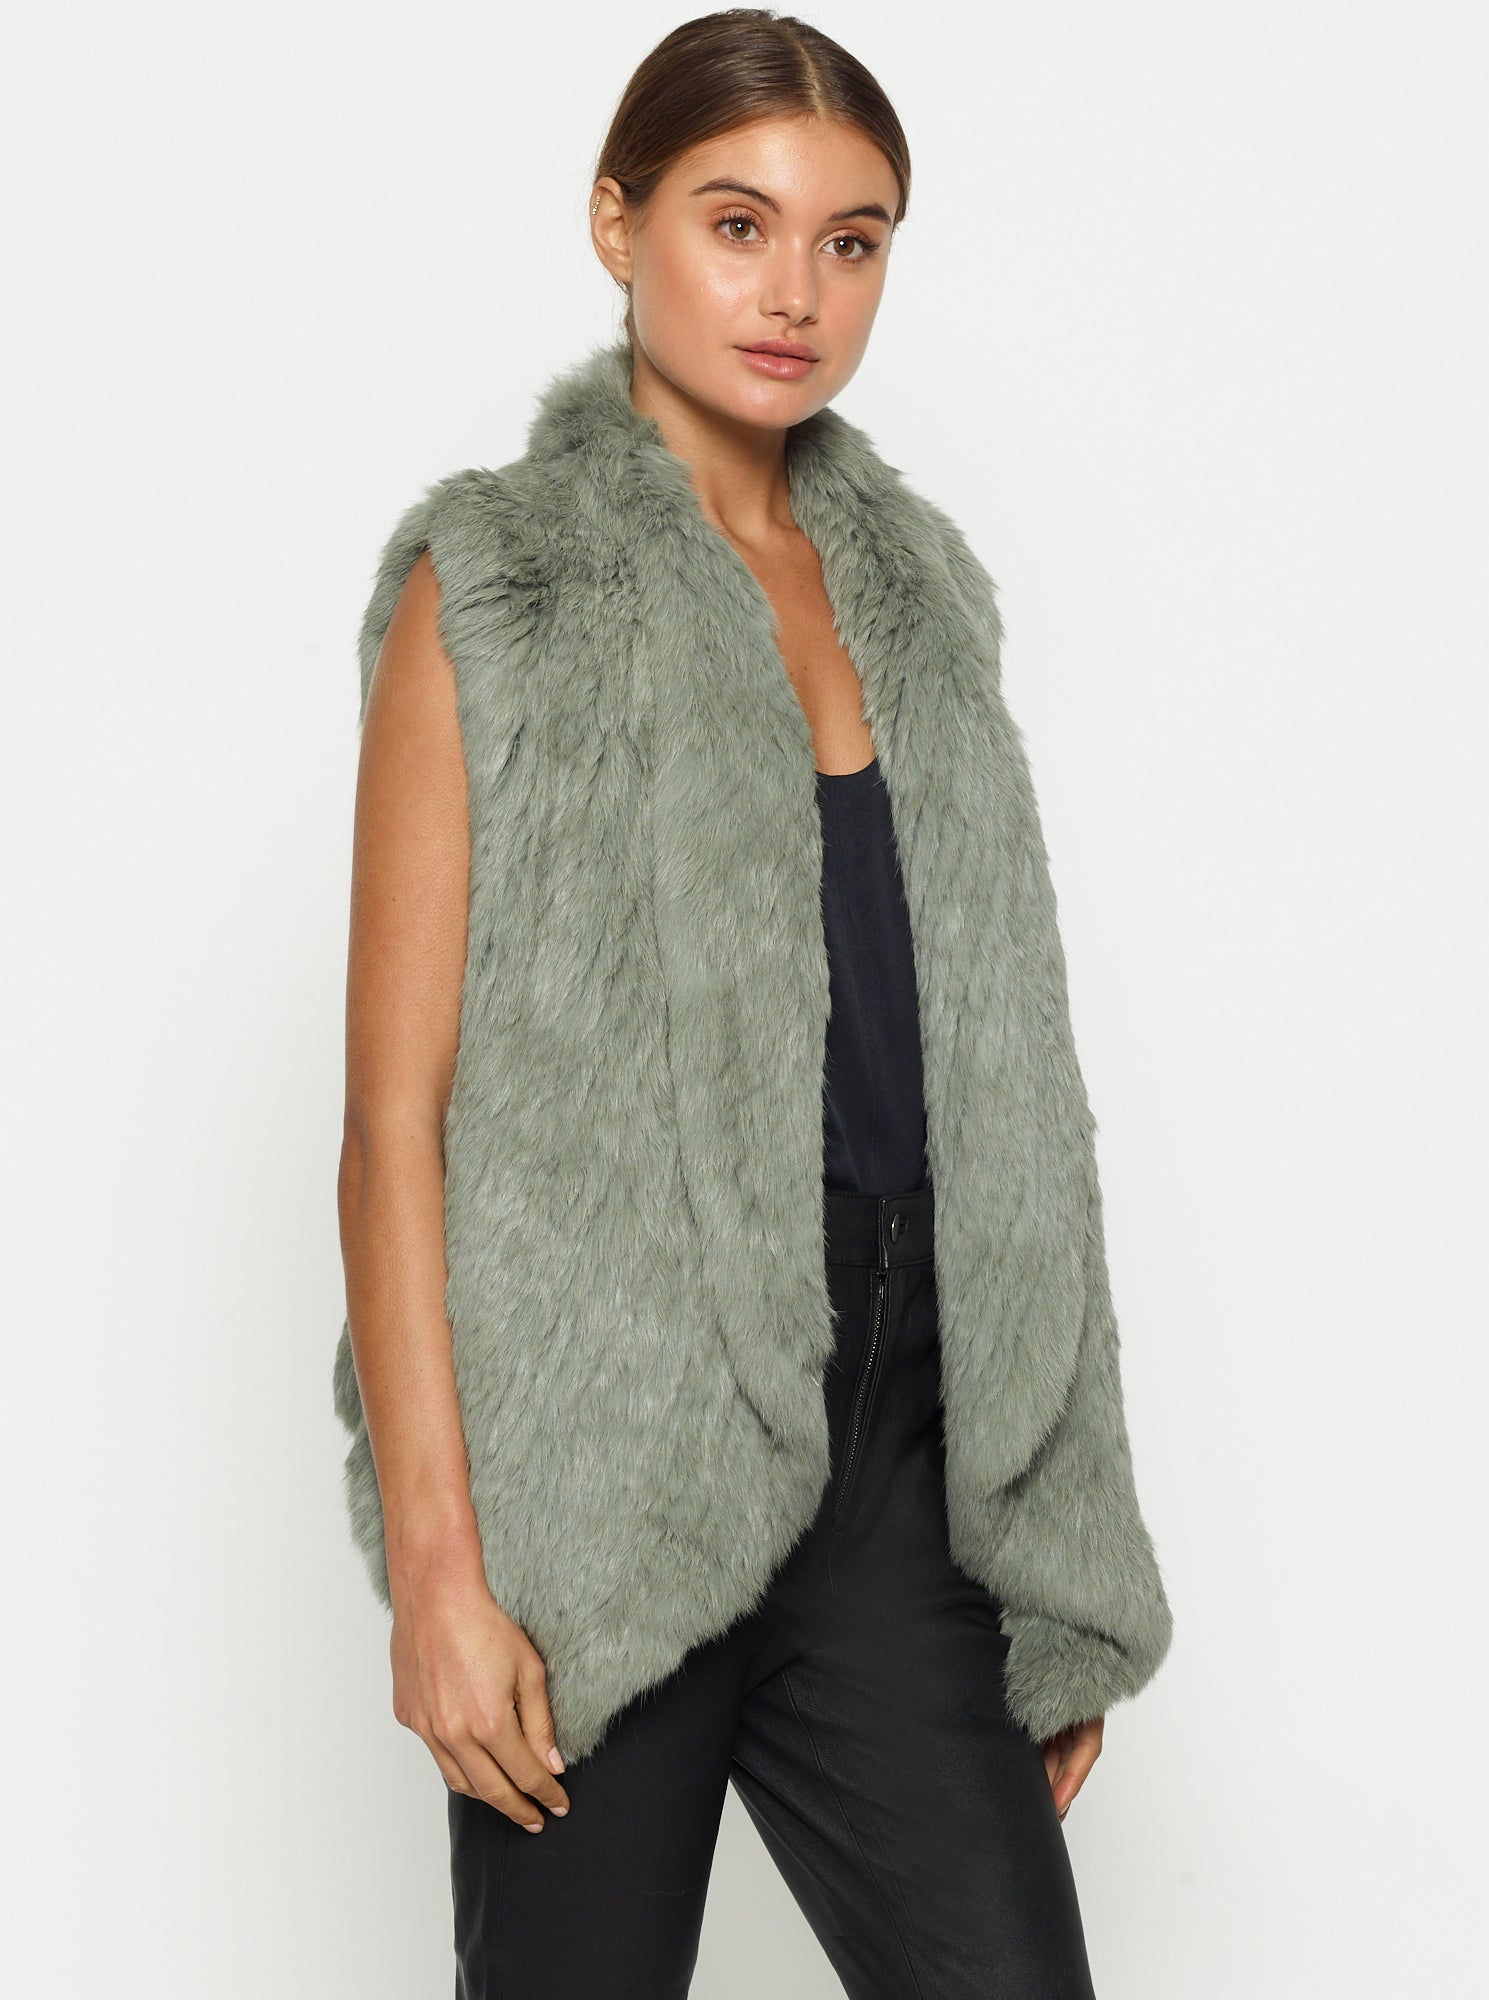 Lush Luxe Fur Vest - Sage Green